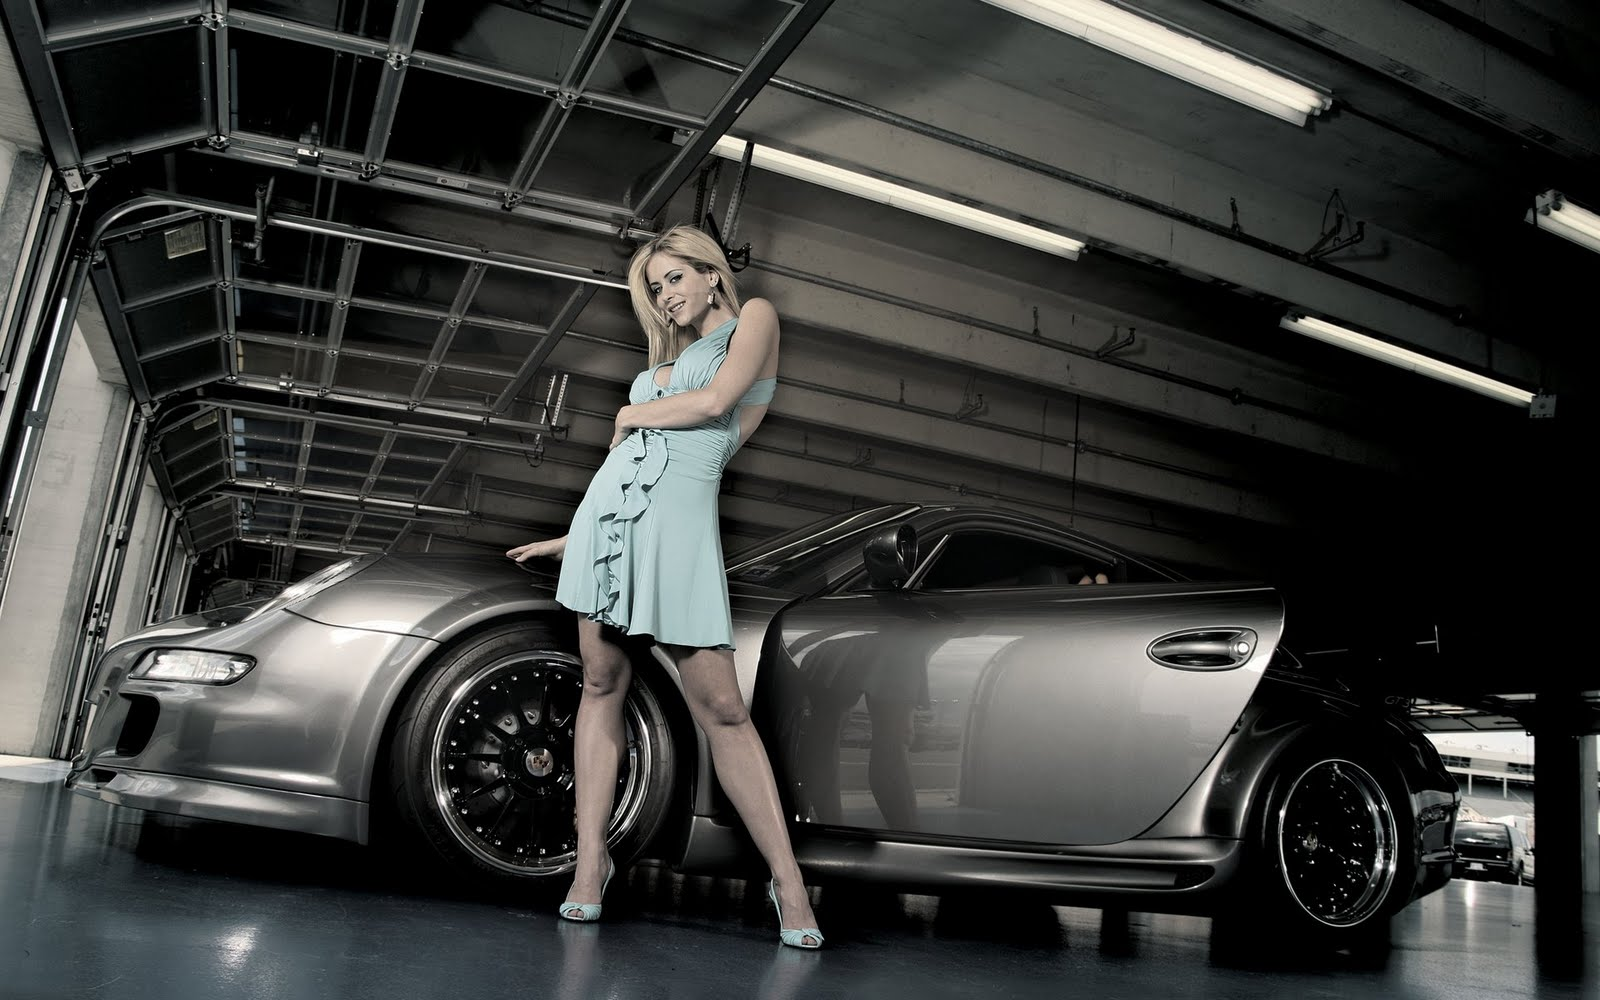 Model Cars Of The World Fresh Girl With Car